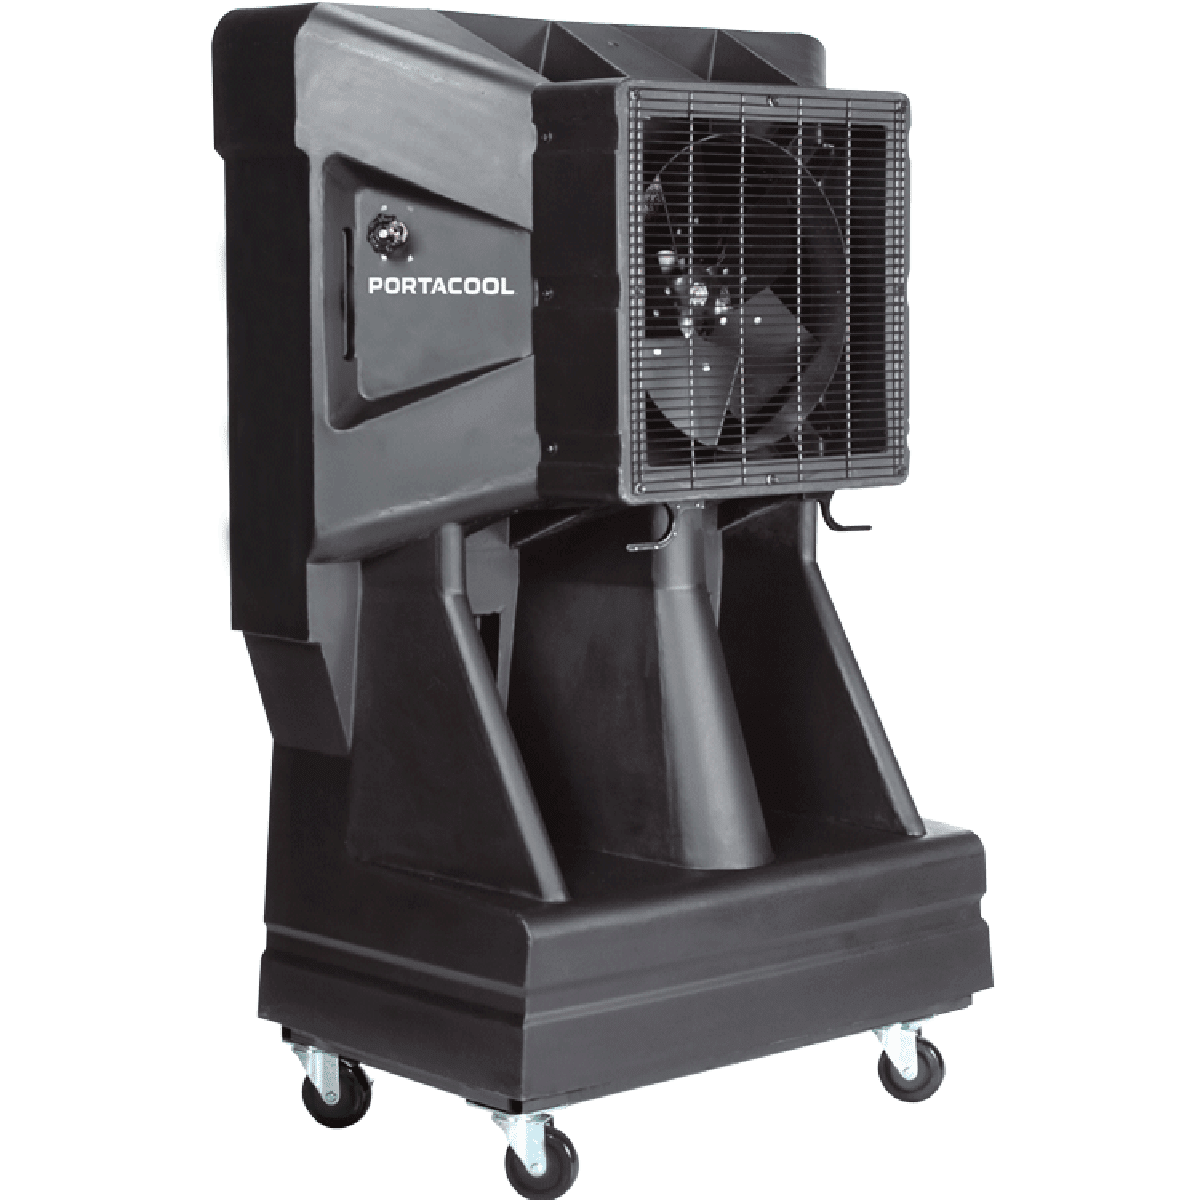 Port-A-Cool 16-Inch Three Speed Vertical Tank Evaporative Cooler (PAC163SVT) po2138